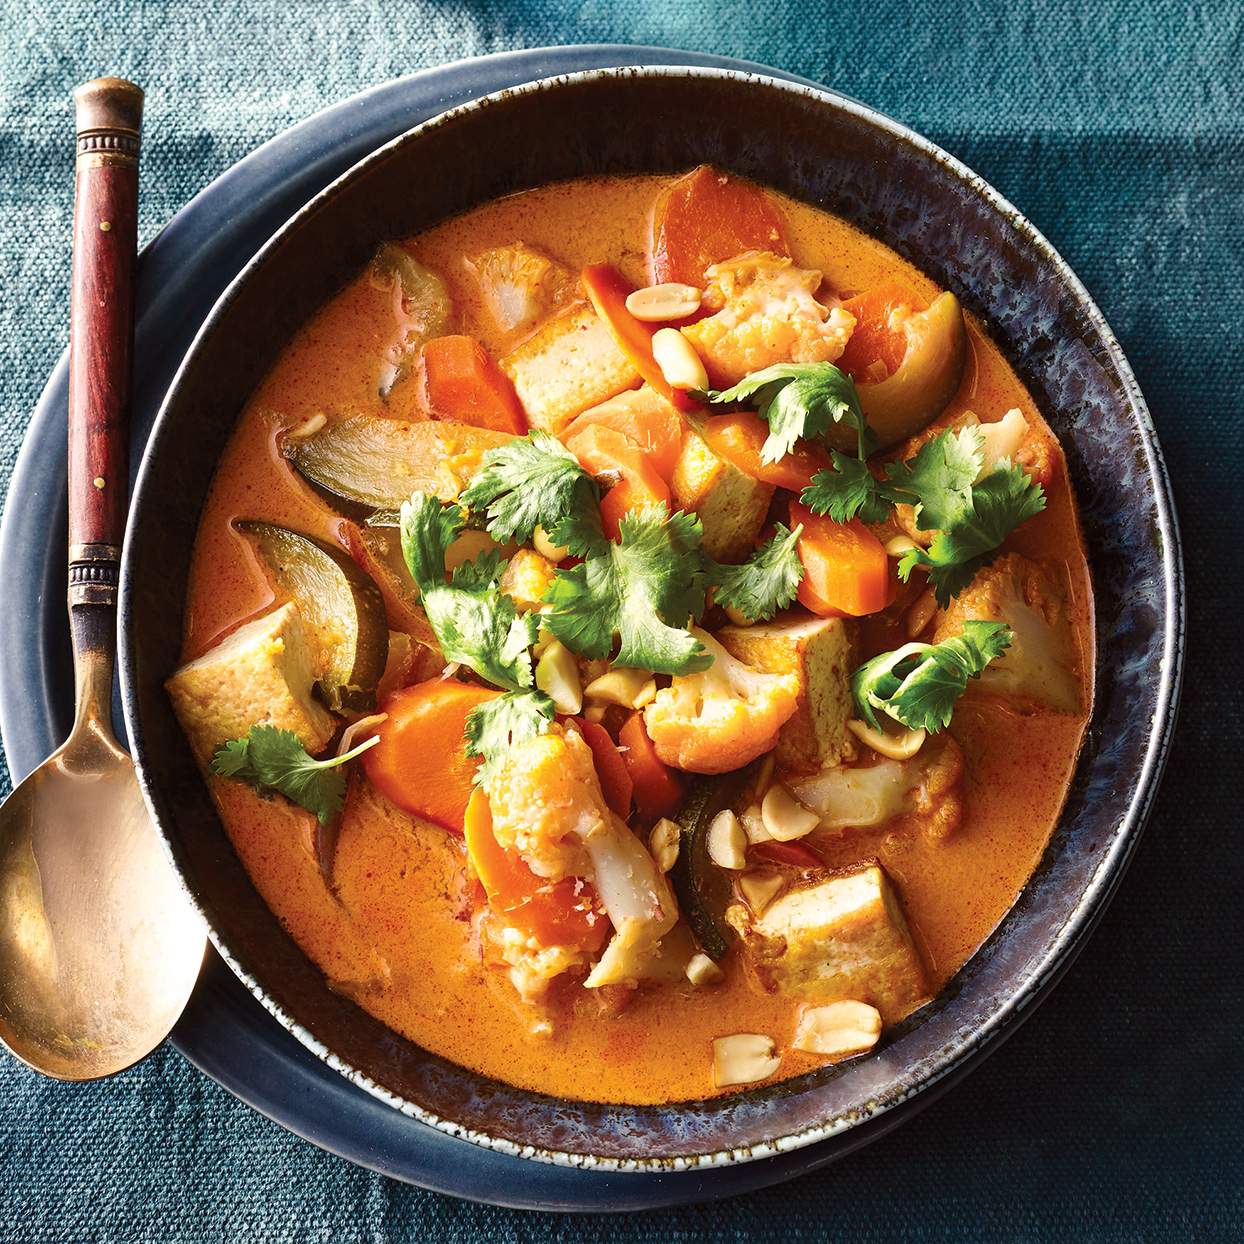 Cauliflower and tofu are ideal ingredients for this soup. The cauliflower soaks up the cooking liquid, and the tofu keeps the dish light, allowing the bold flavors in the liquid—predominantly the curry paste and lemongrass—to take center stage in this slow-cooker tofu stew.